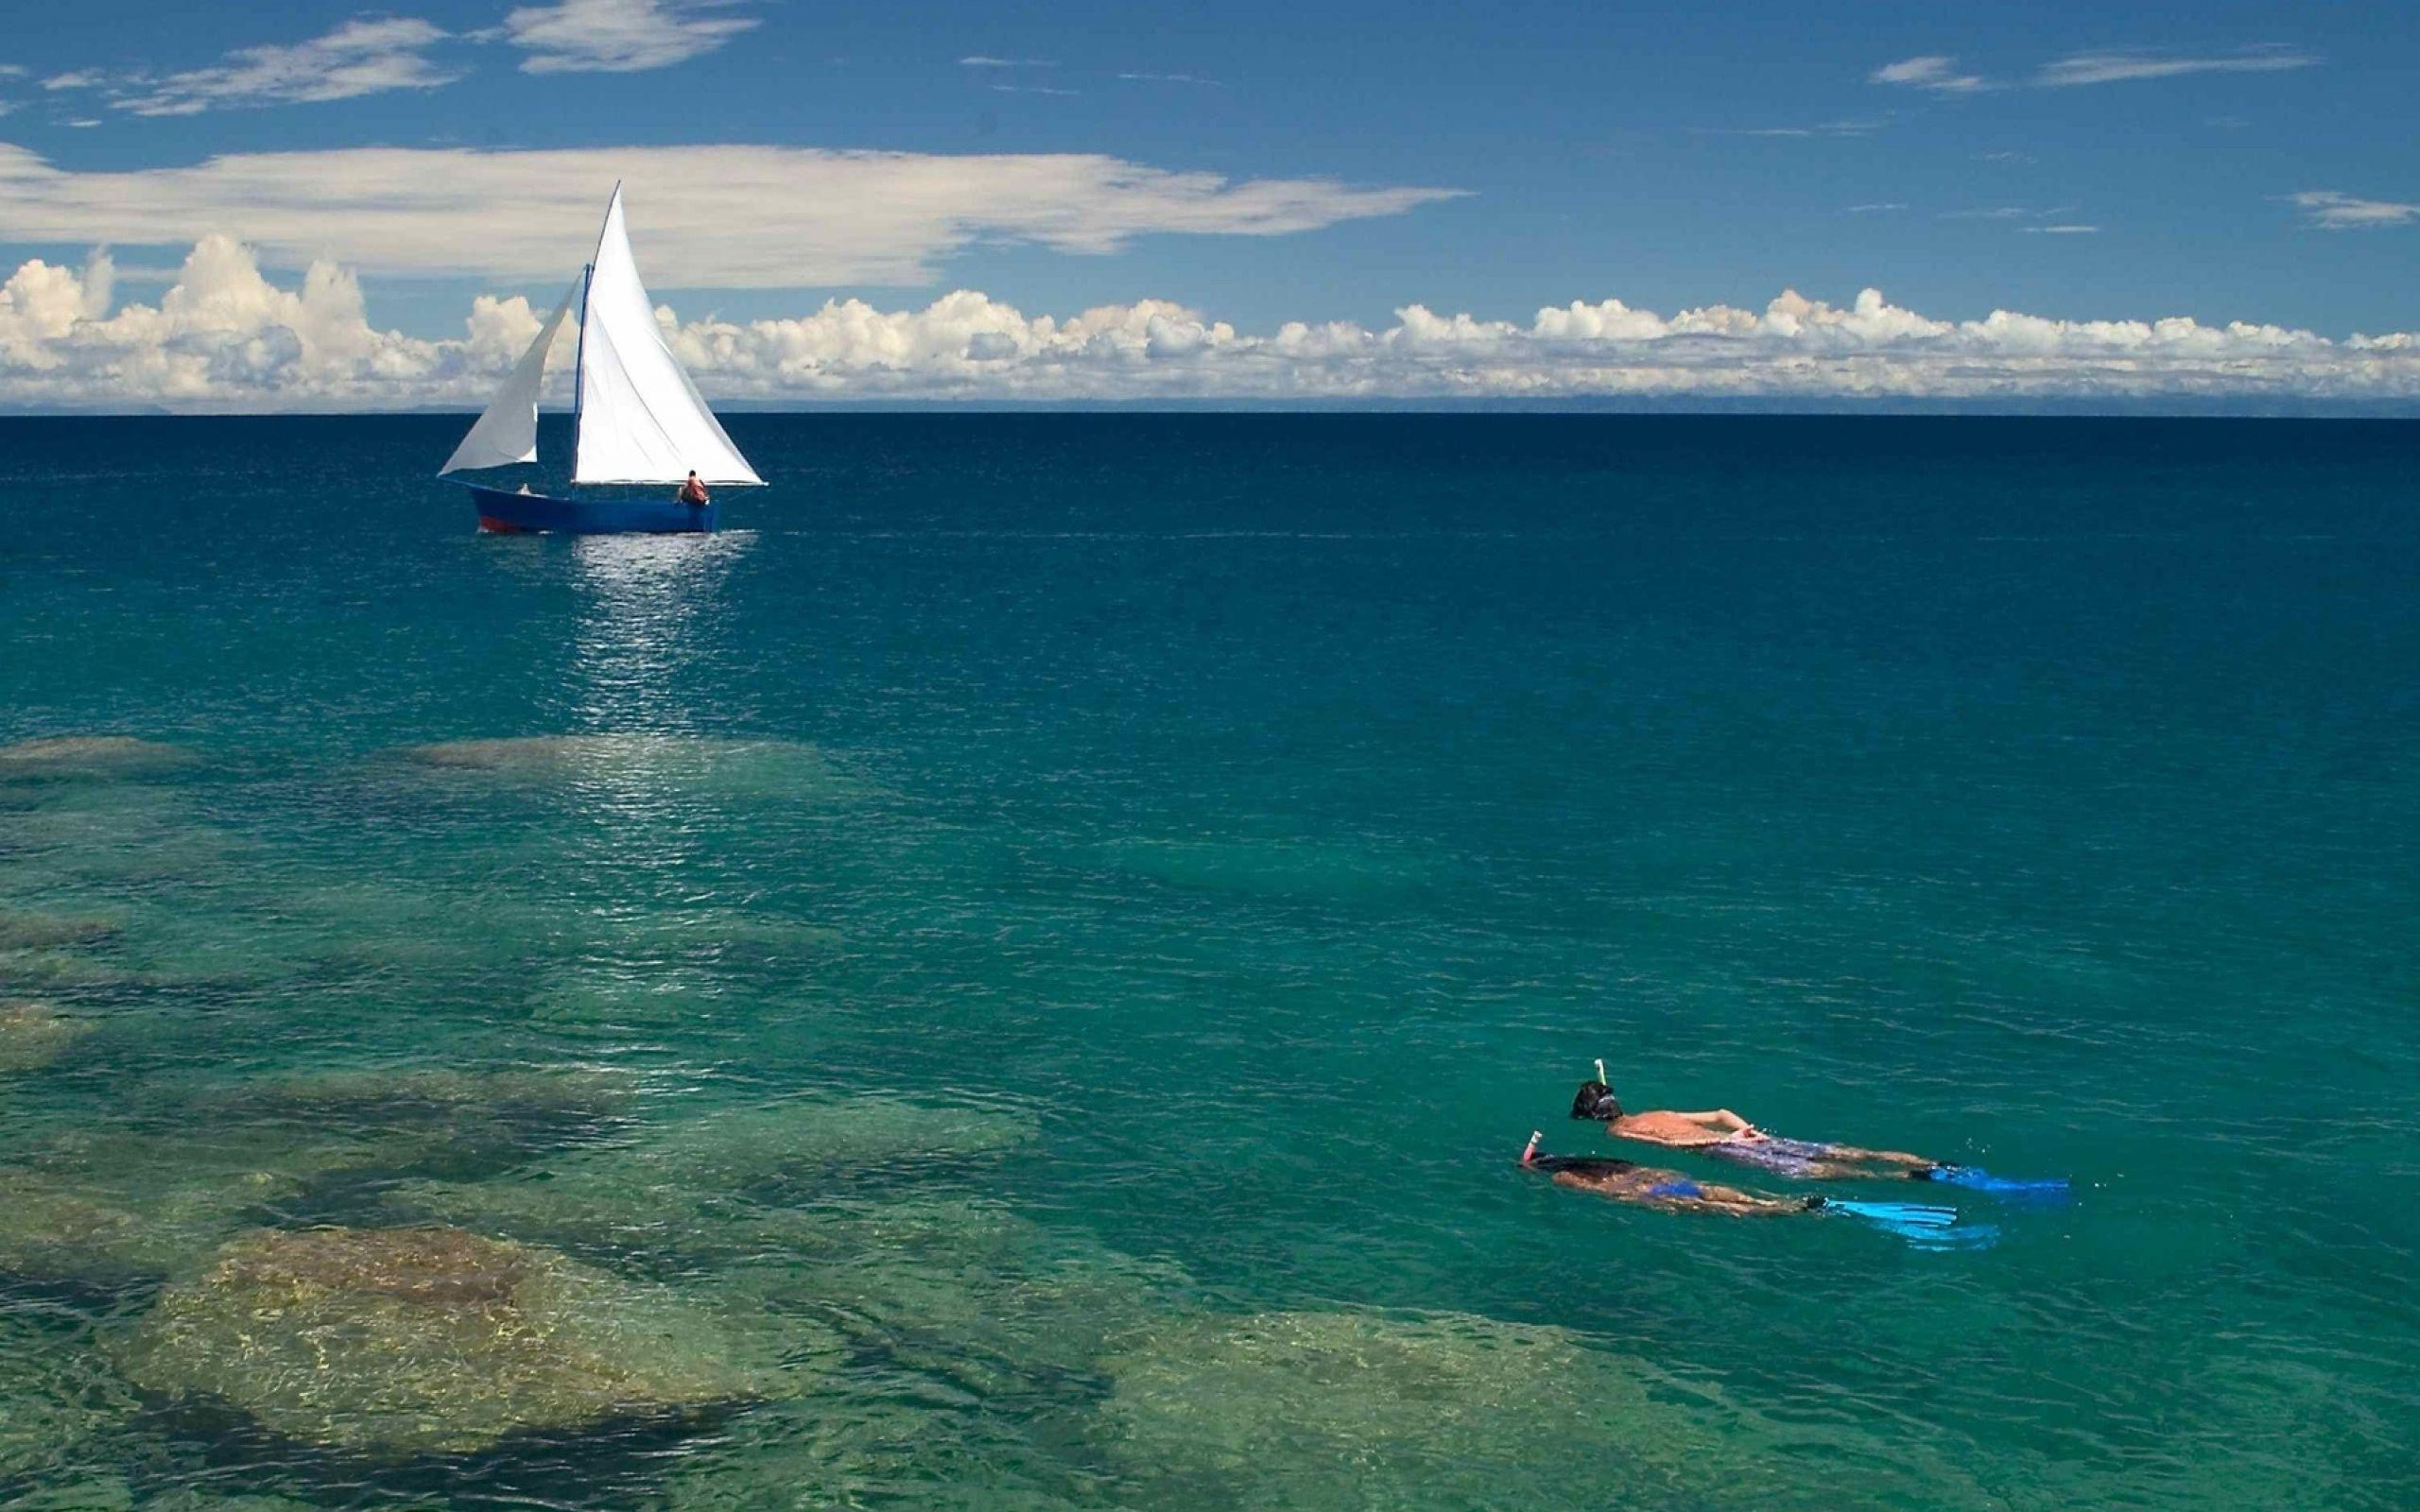 Likoma Island in Malawi | Photo and Desktop Wallpaper